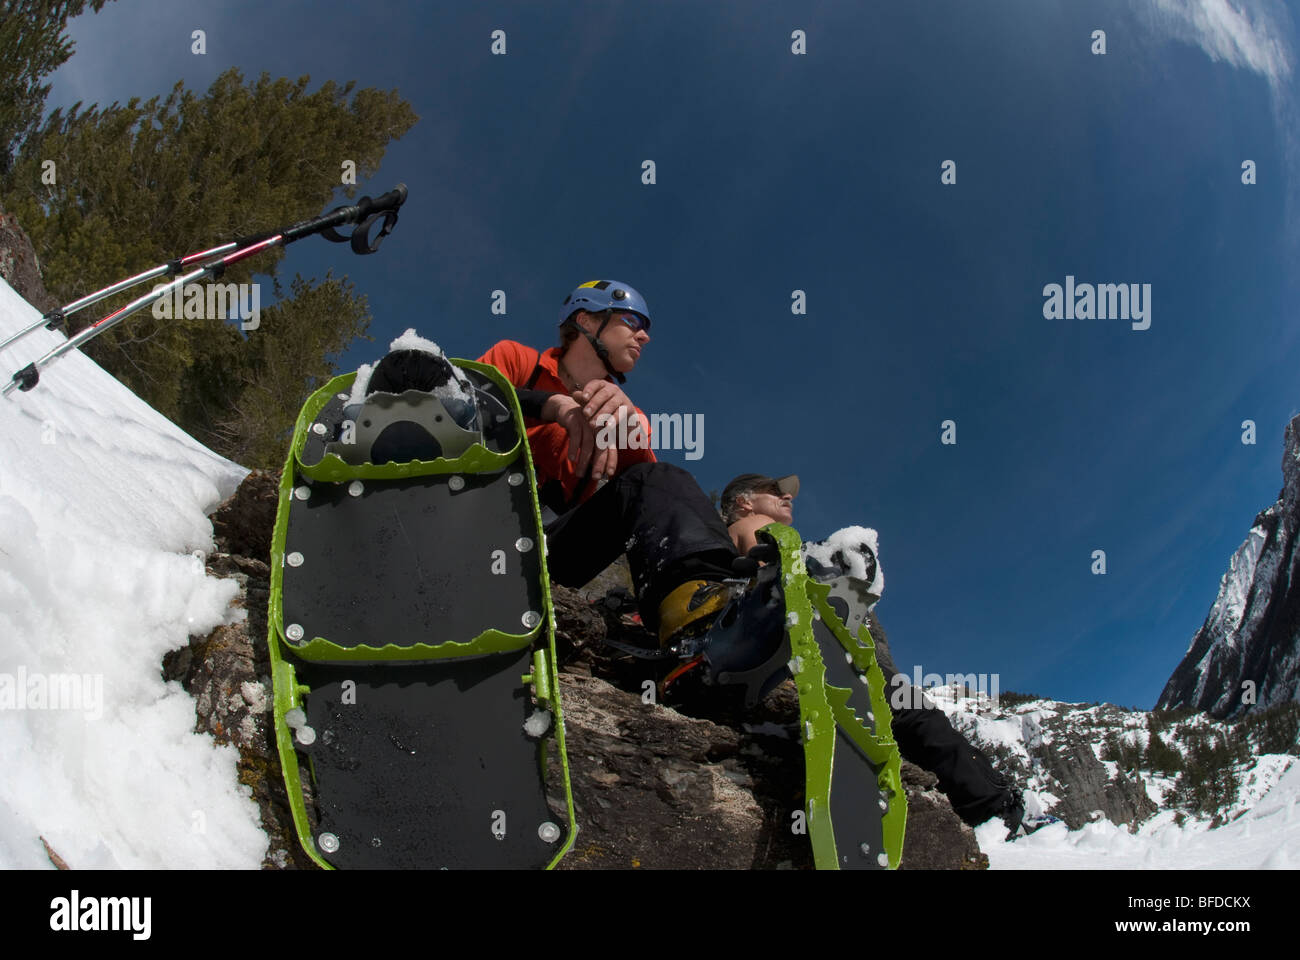 Two men rest under blue skies while snowshoeing near Ouray, Colorado. - Stock Image